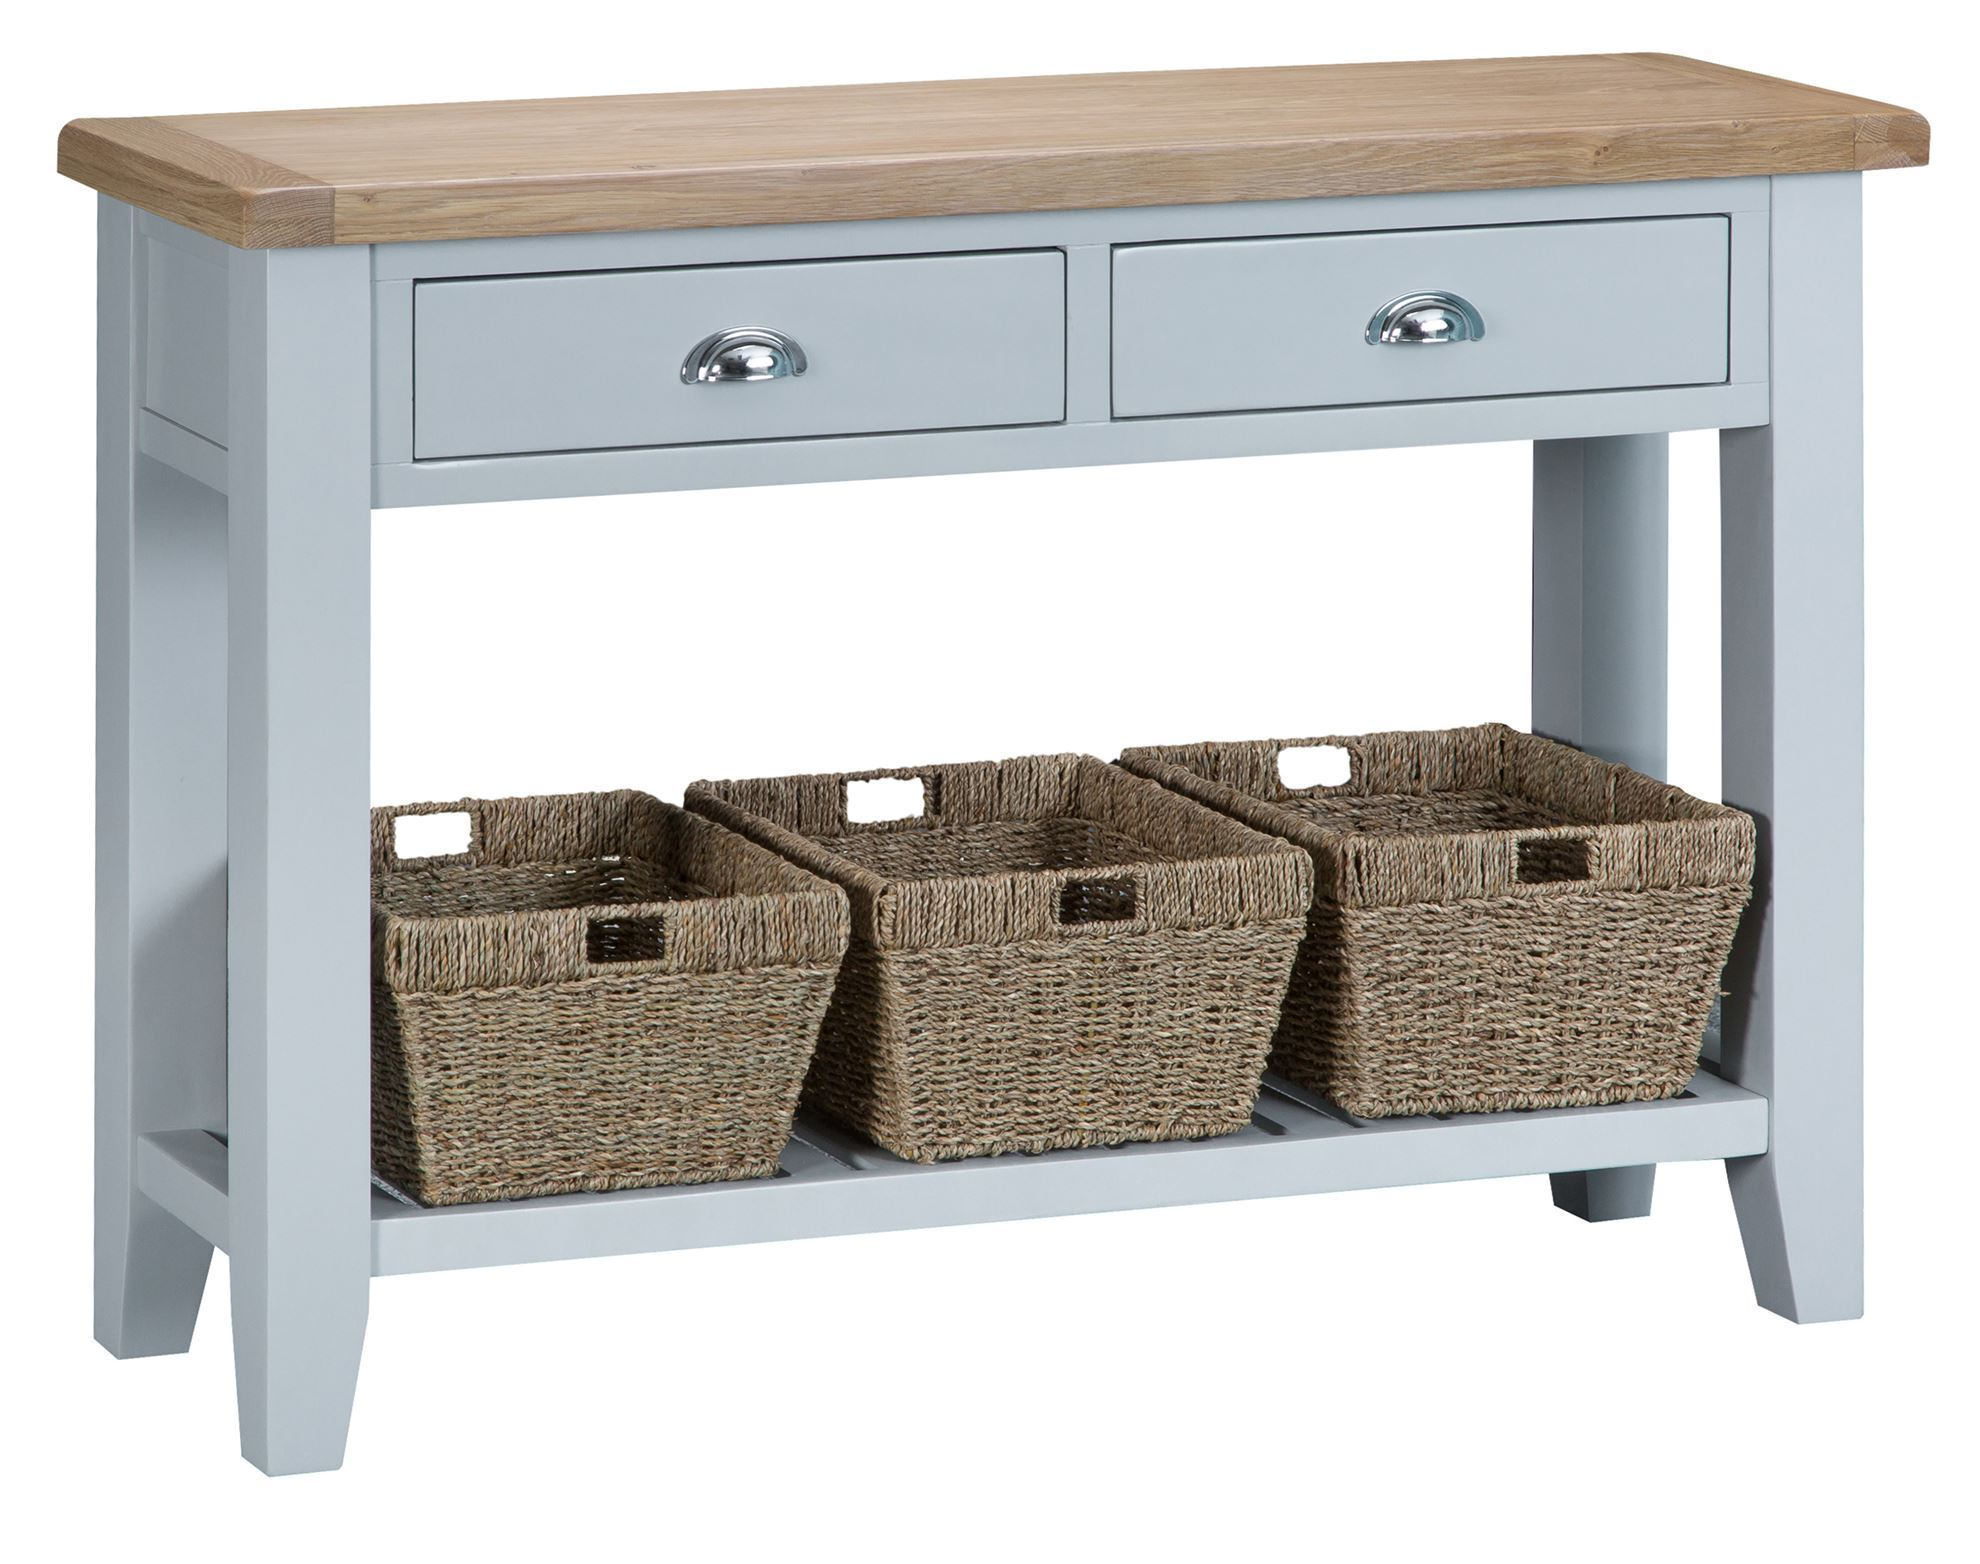 Buckingham Large Console Table, Oak Console Table With Storage Baskets